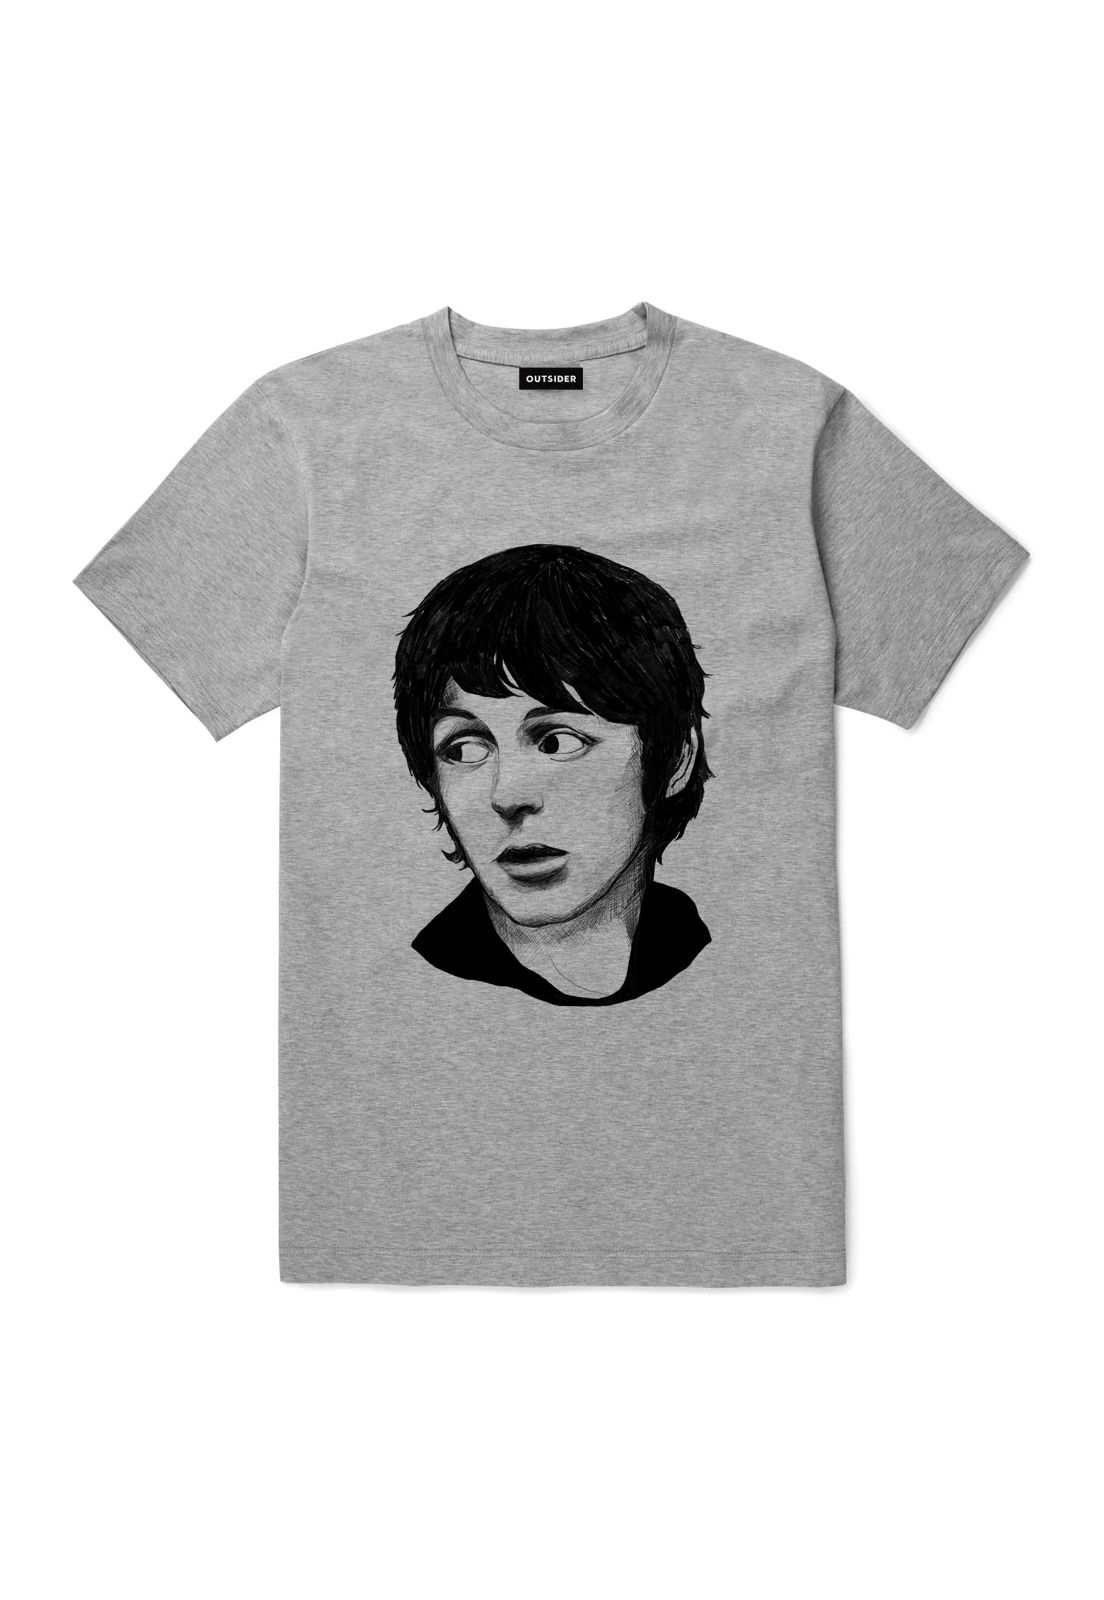 Polera Paul McCartney Gris